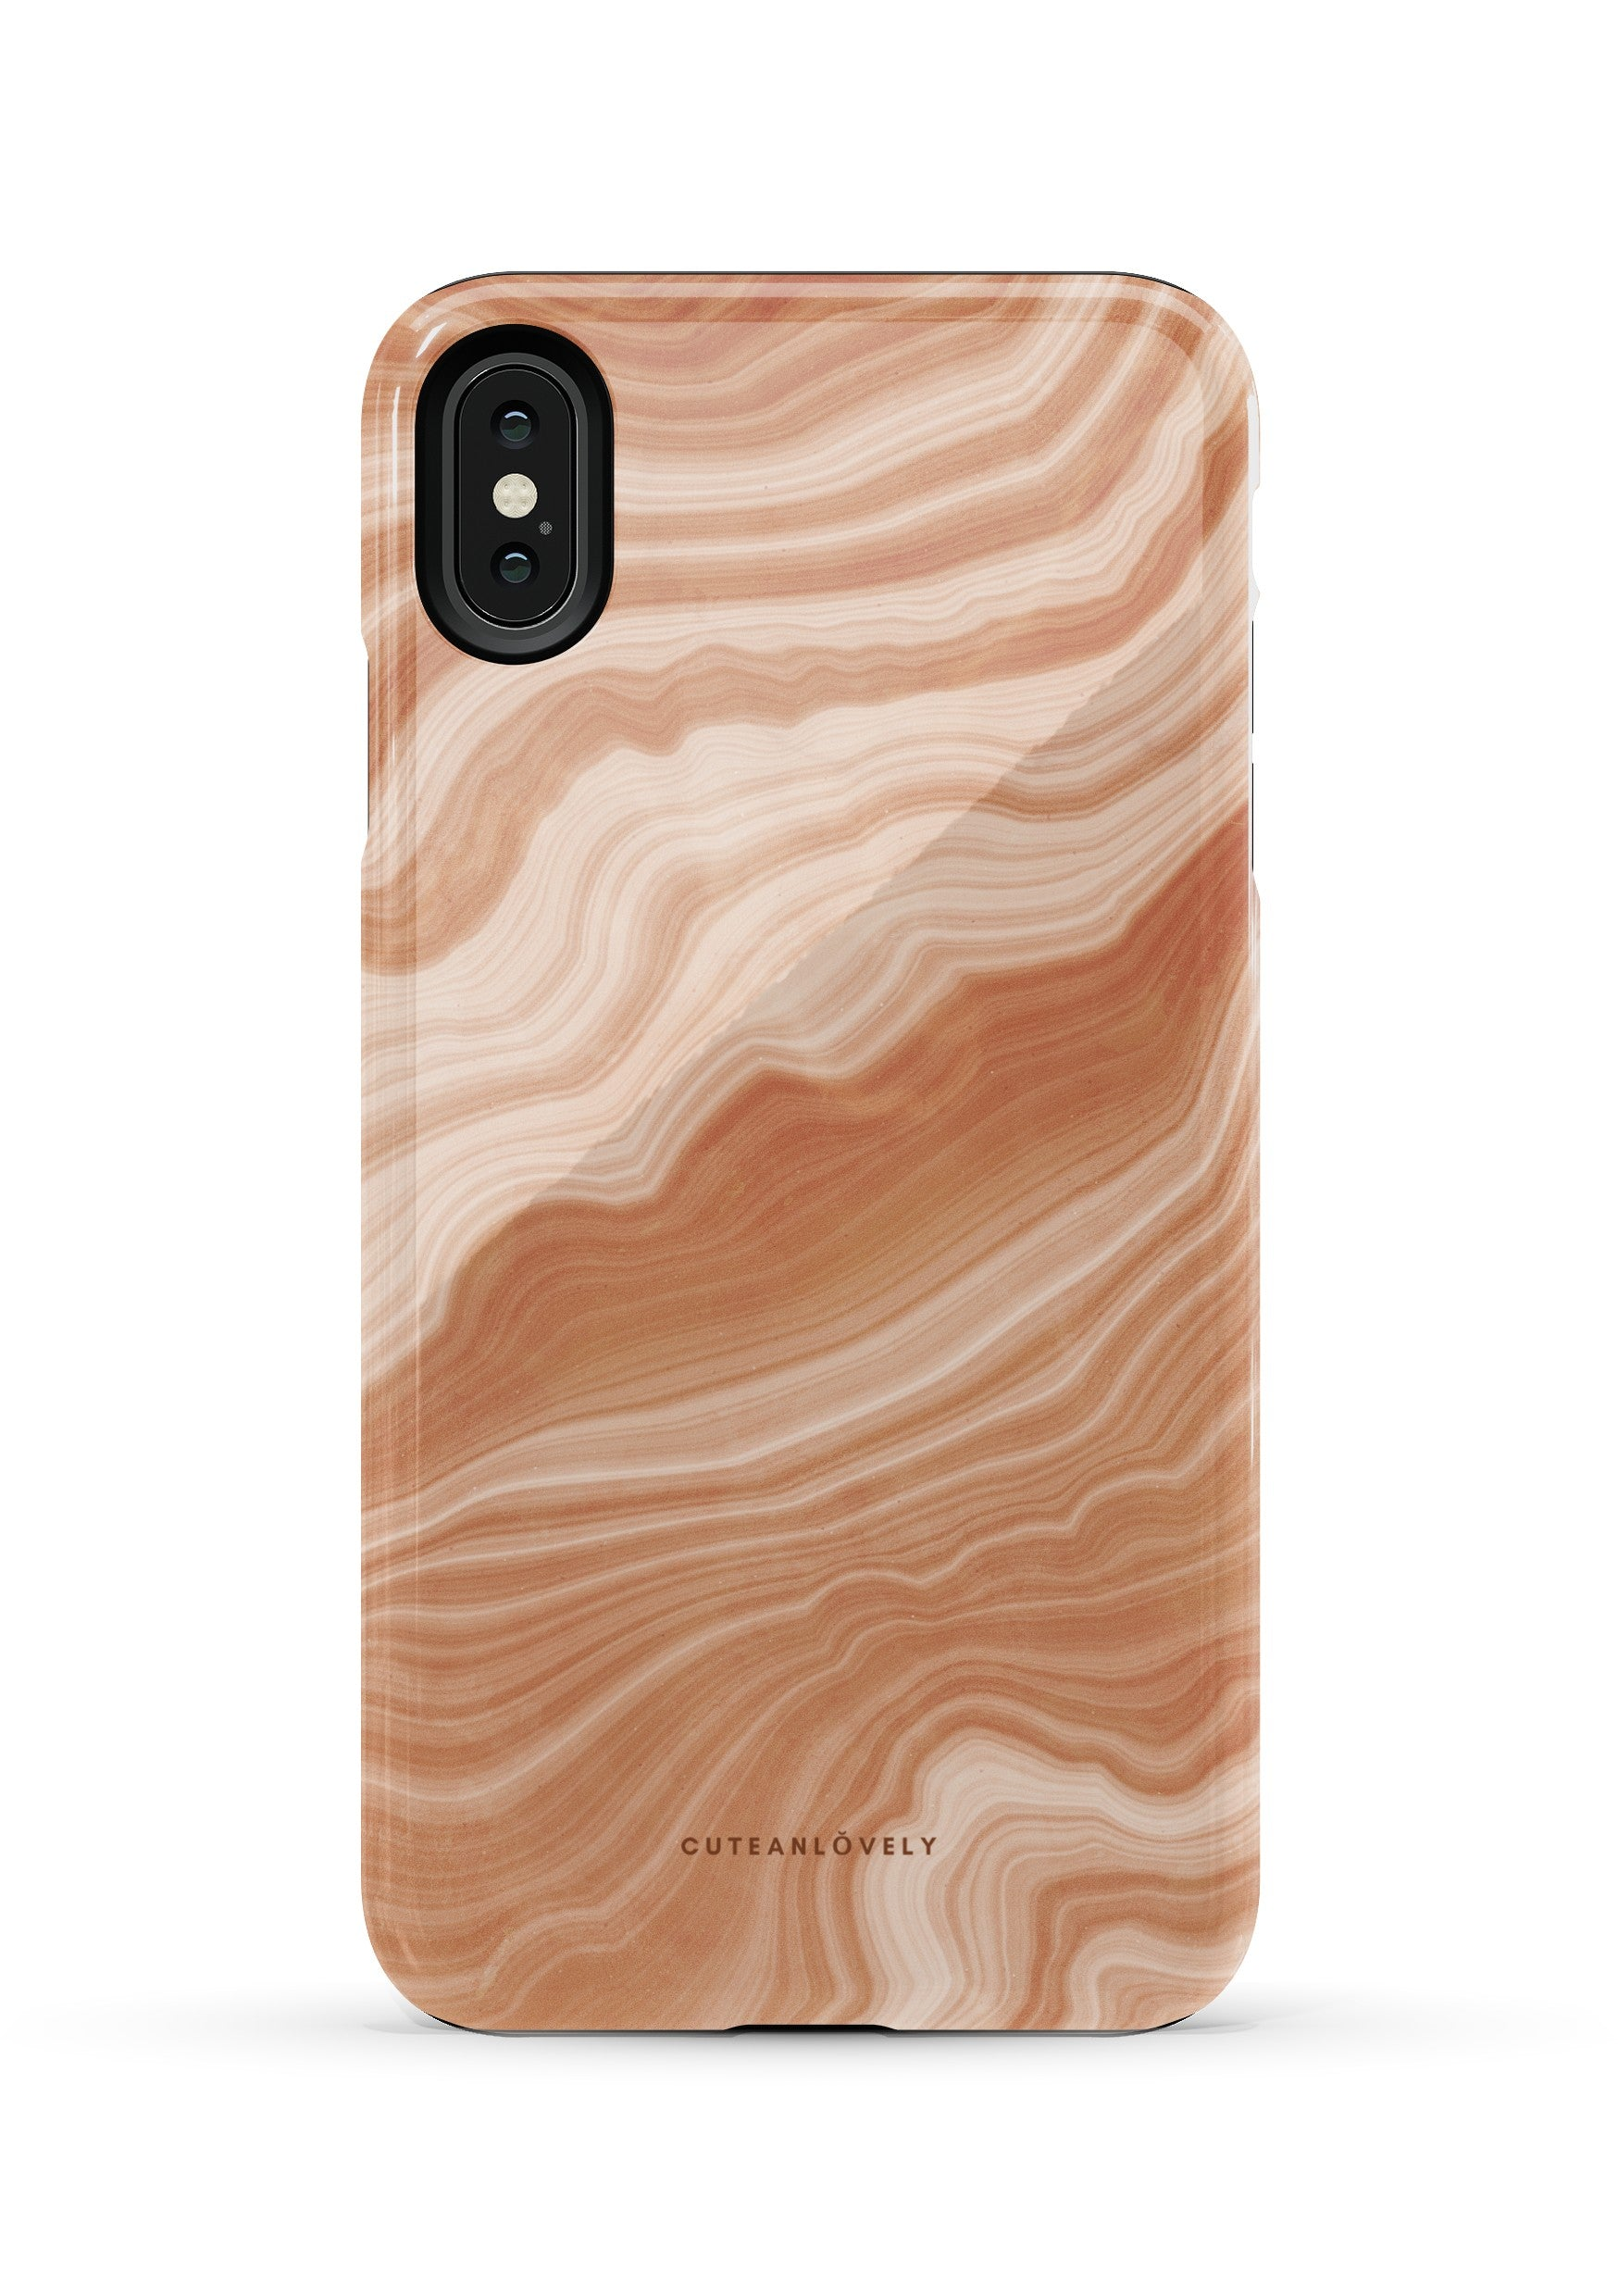 CUTEANLOVELY |Peach Sorbet Marble iPhone XS Max Case